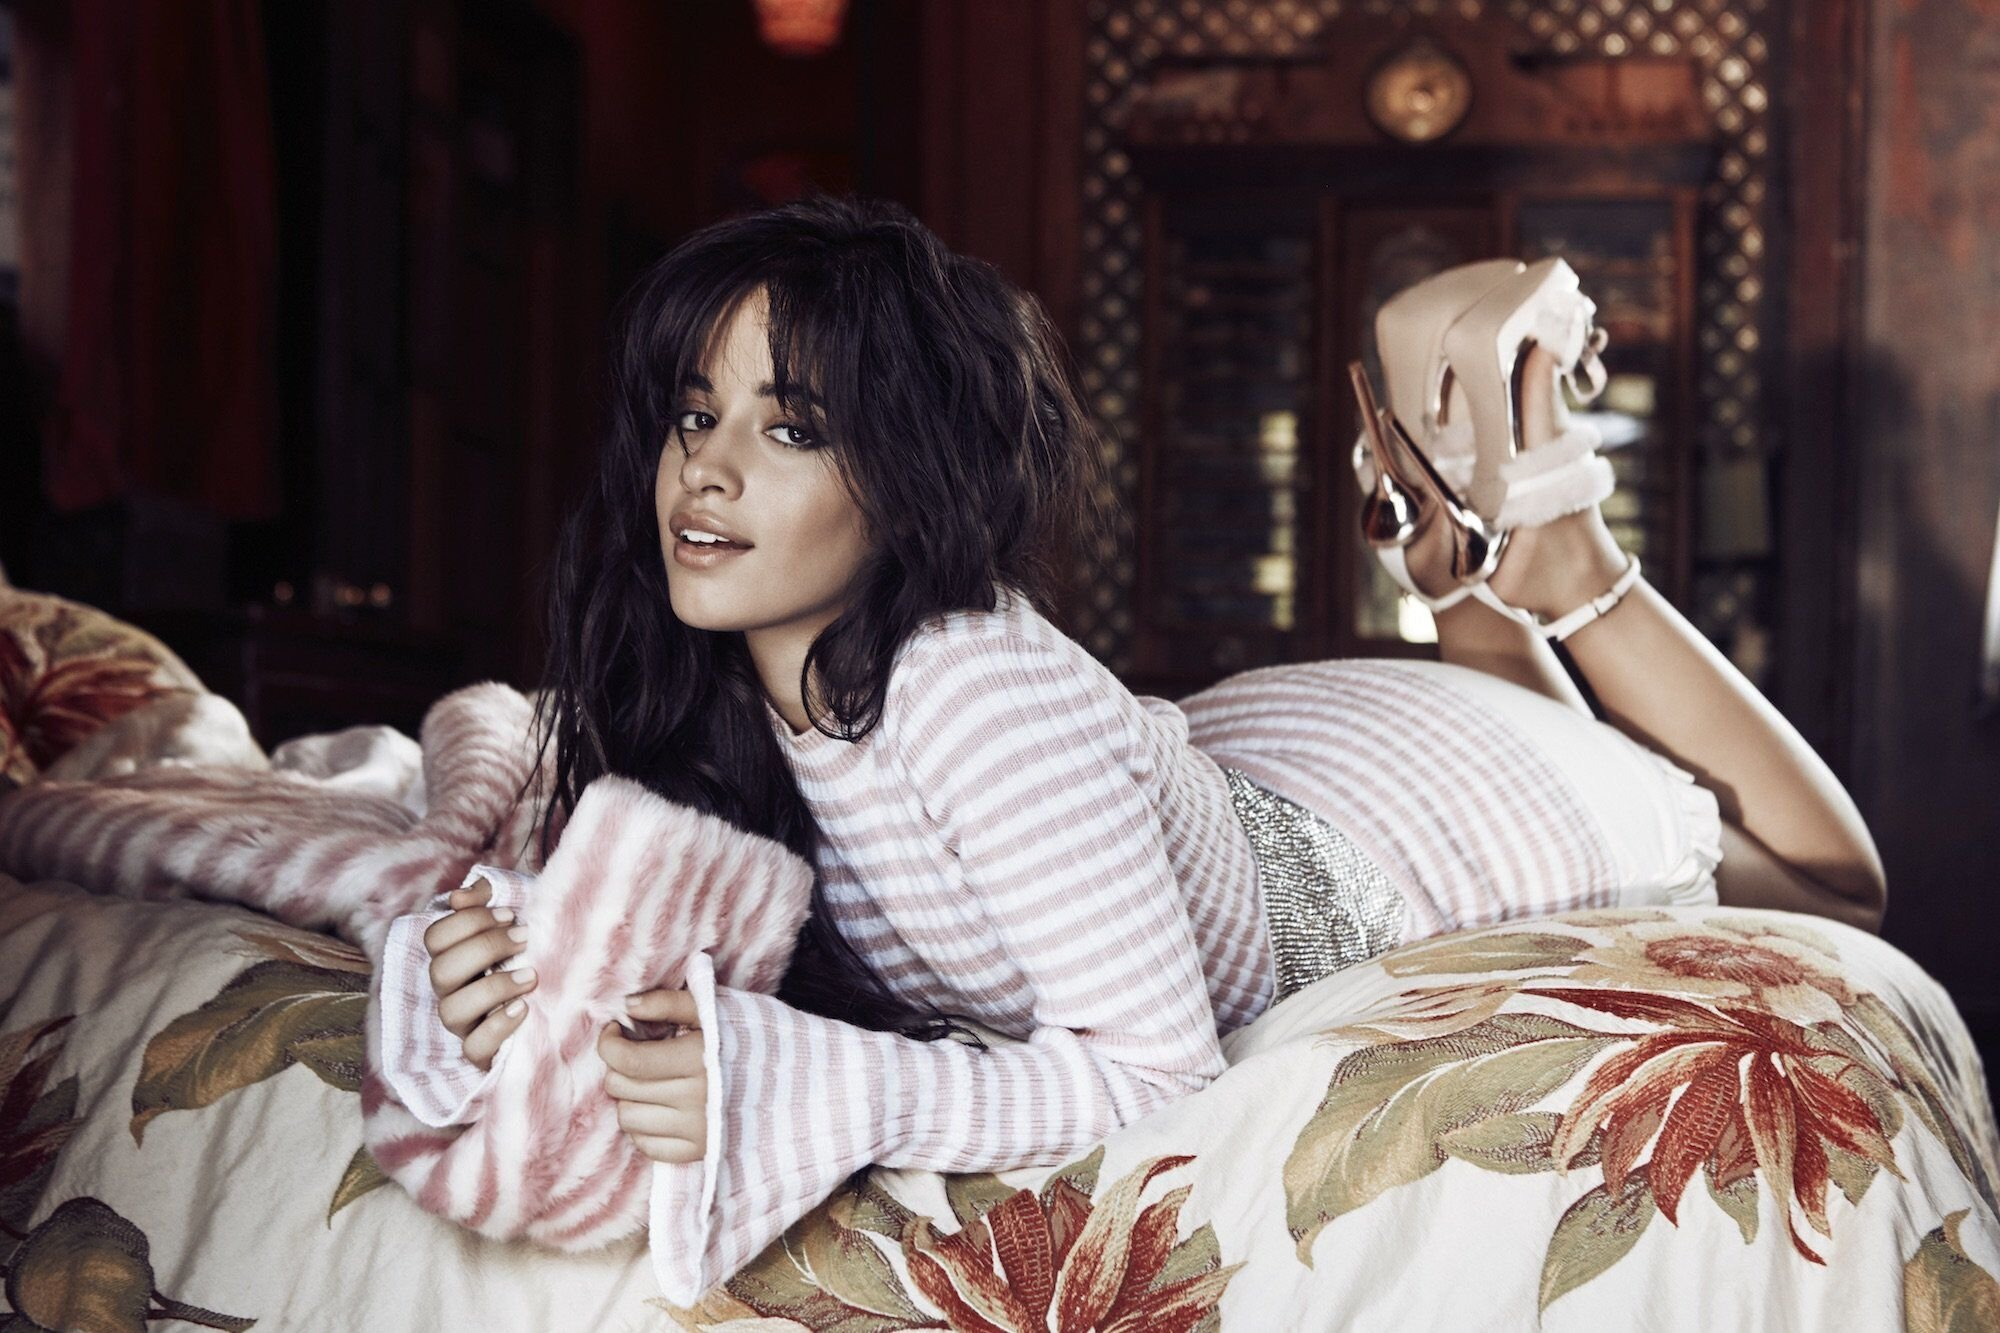 hhCamila Cabello - artist photos